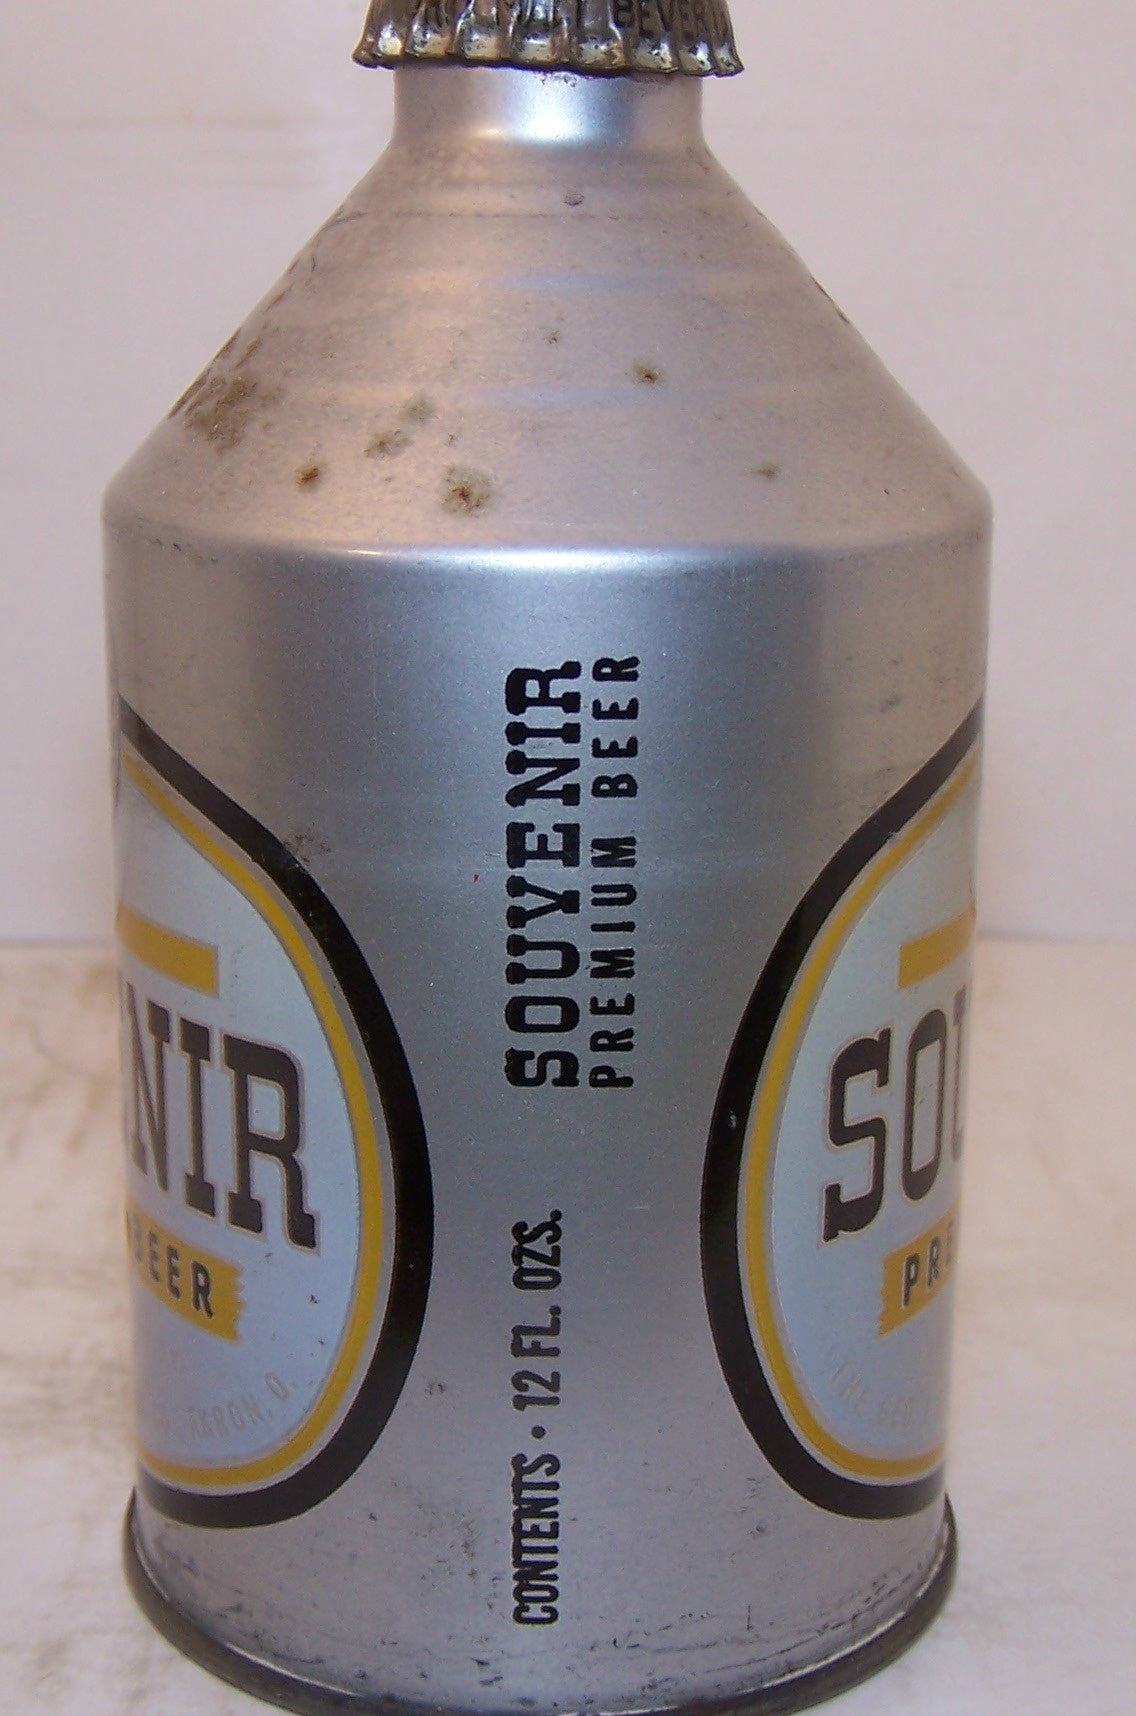 Souvenir Premium Beer non irtp, USBC 199-4, Grade 1/1- Sold on 7/11/15